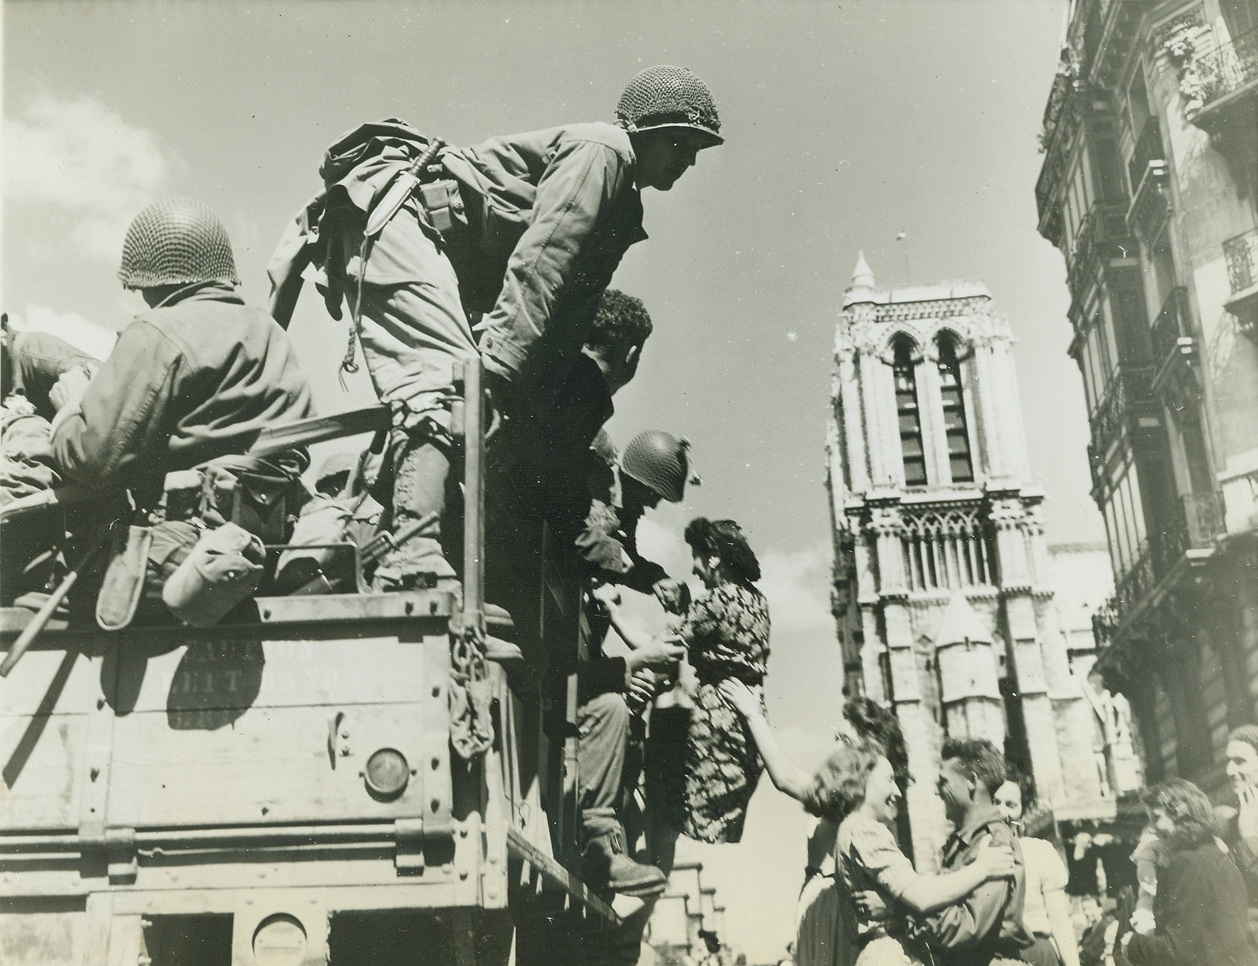 Welcome to the Liberating Americans, 8/28/1944. Paris – United States soldiers are shown being joyfully greeted by French women in the shadow of Notre Dame Cathedral. They dance – and one girl may be pulling a soldier from the truck. Credit: ACME photo by Bert Brandt for the War Picture Pool;